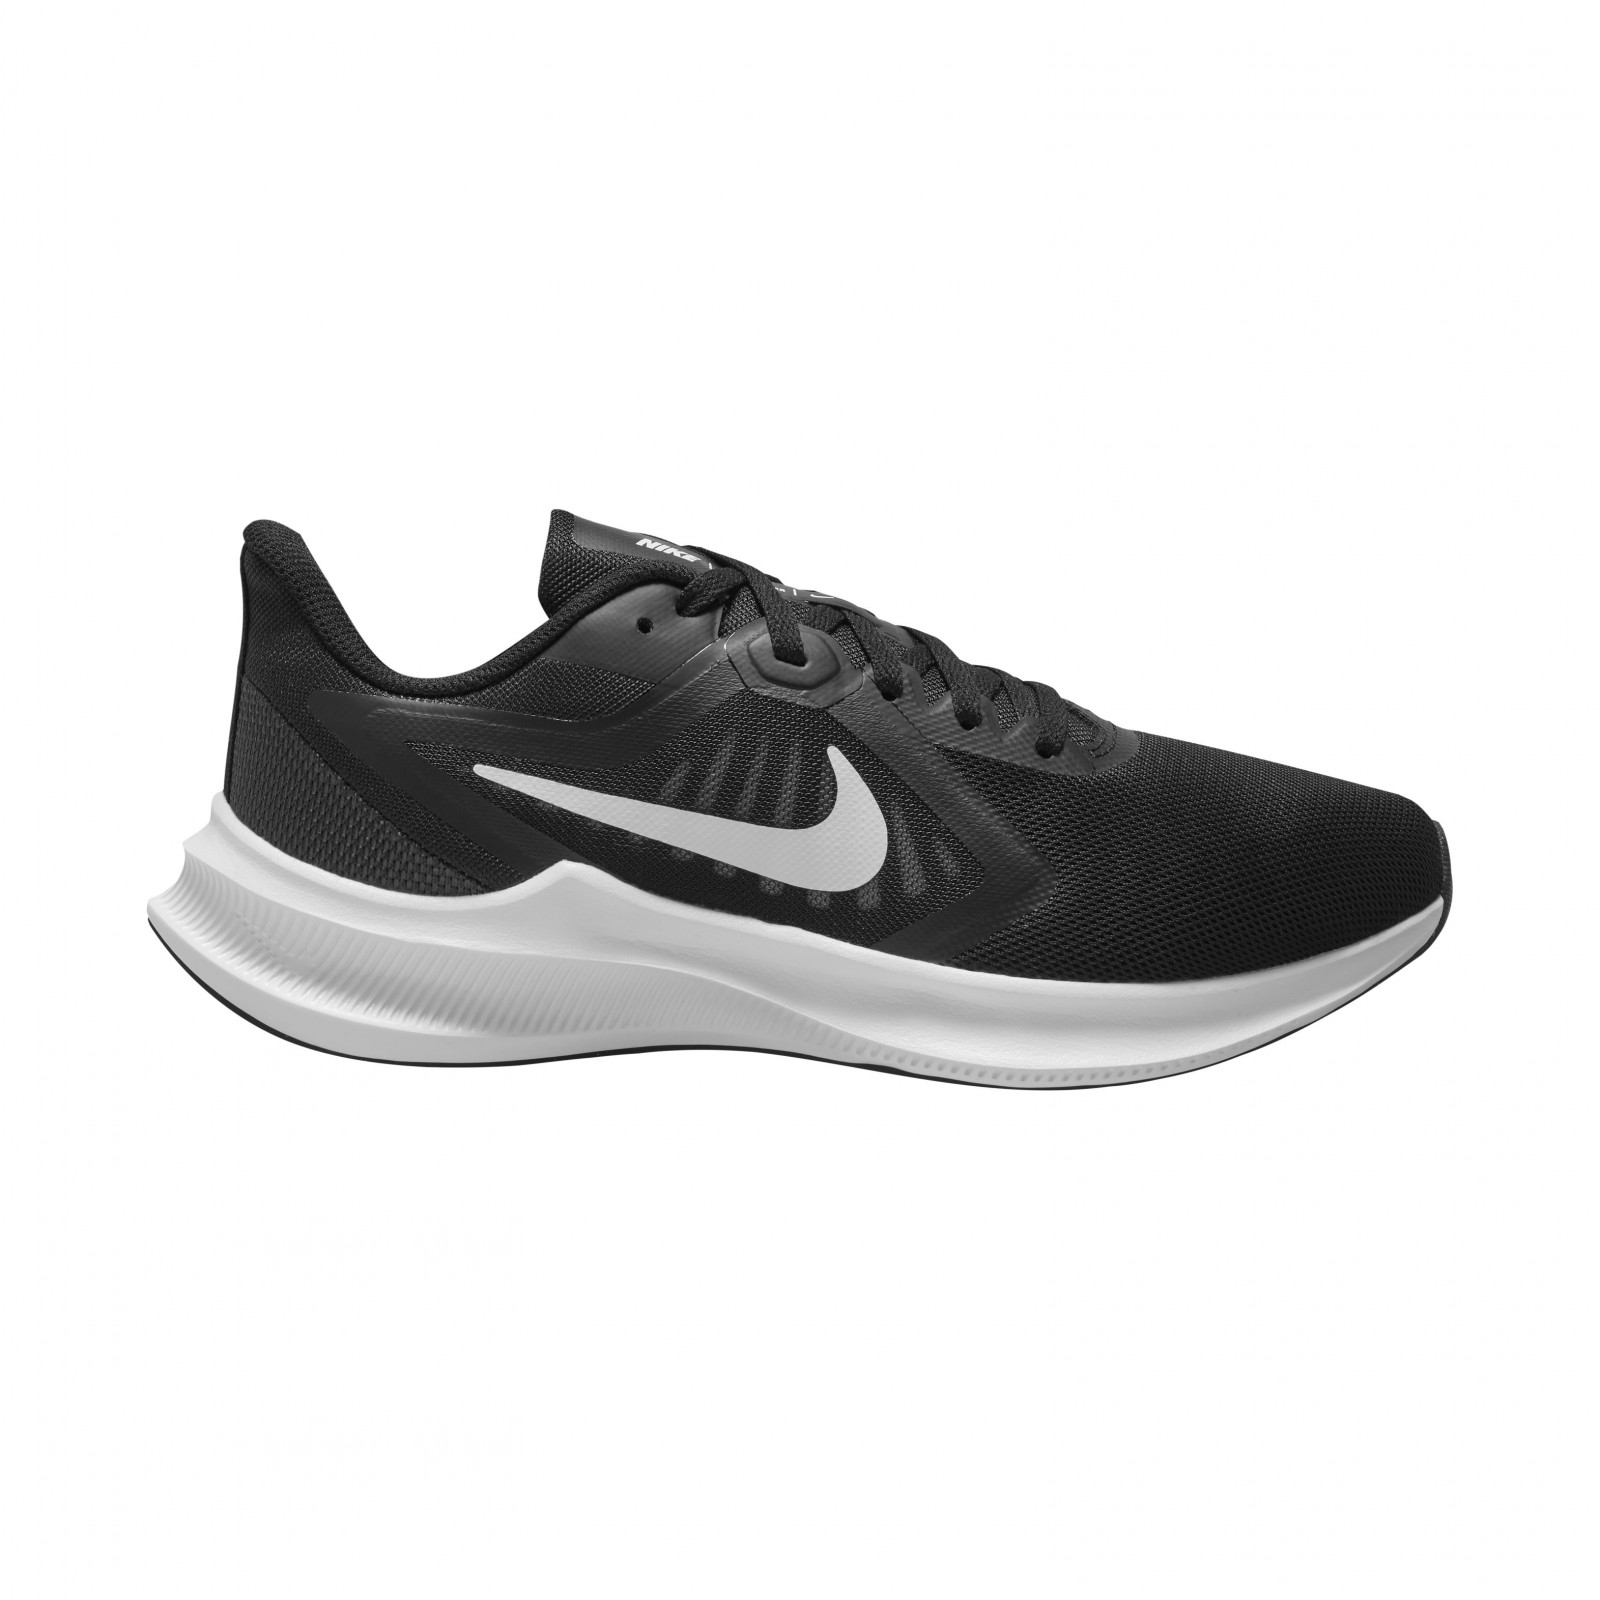 Wmns nike downshifter 10 BLACK/WHITE-ANTHRACITE